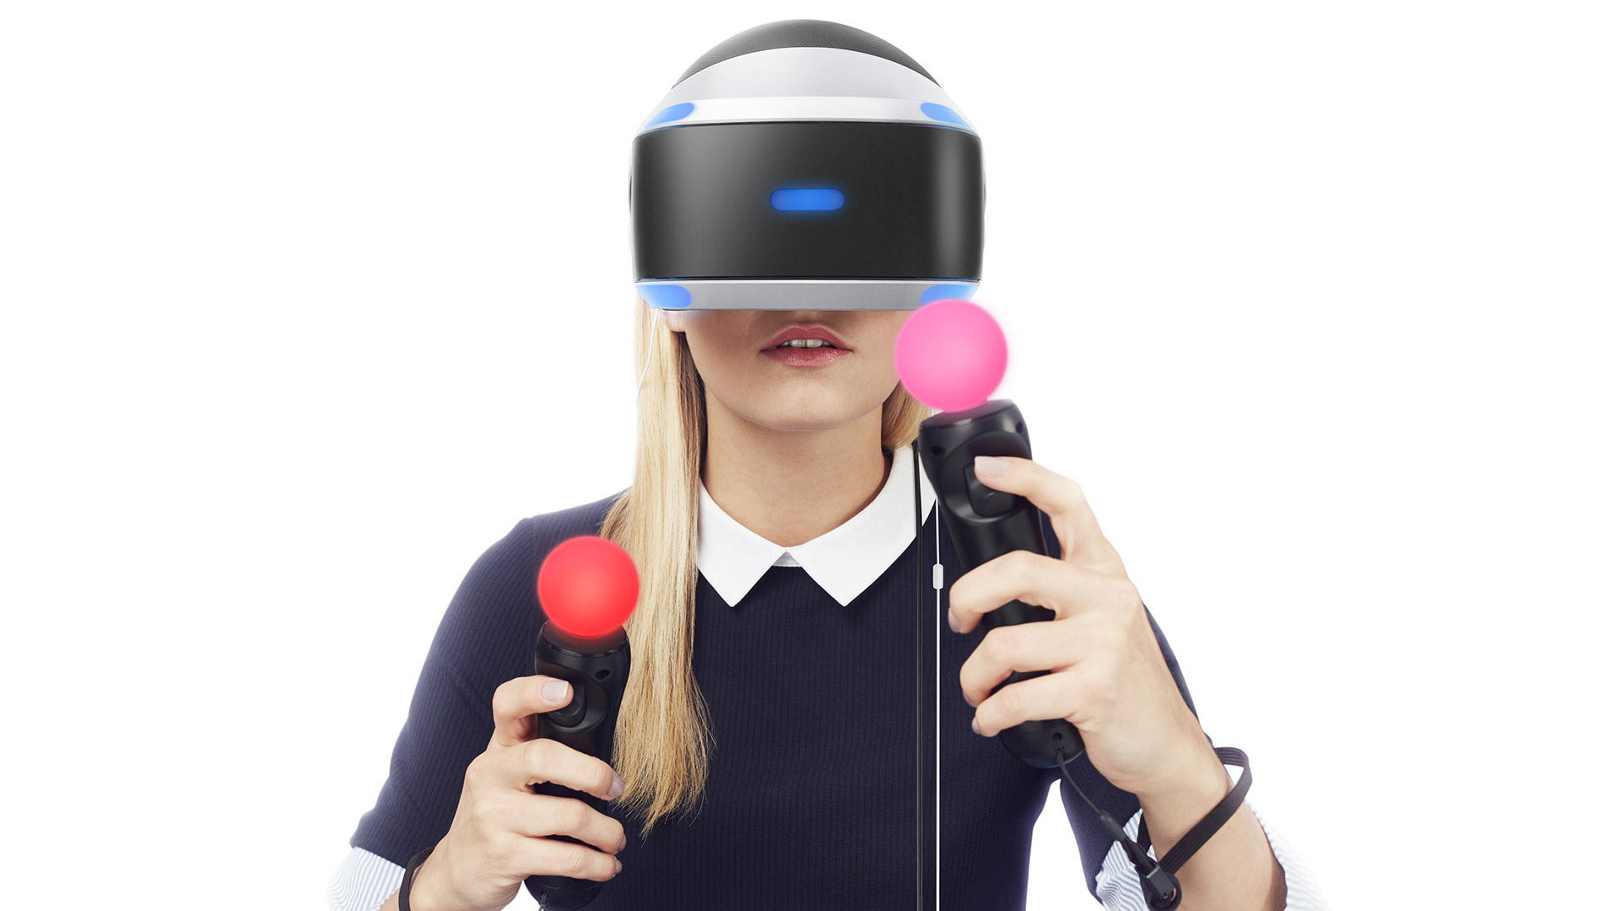 PlayStaiton VR